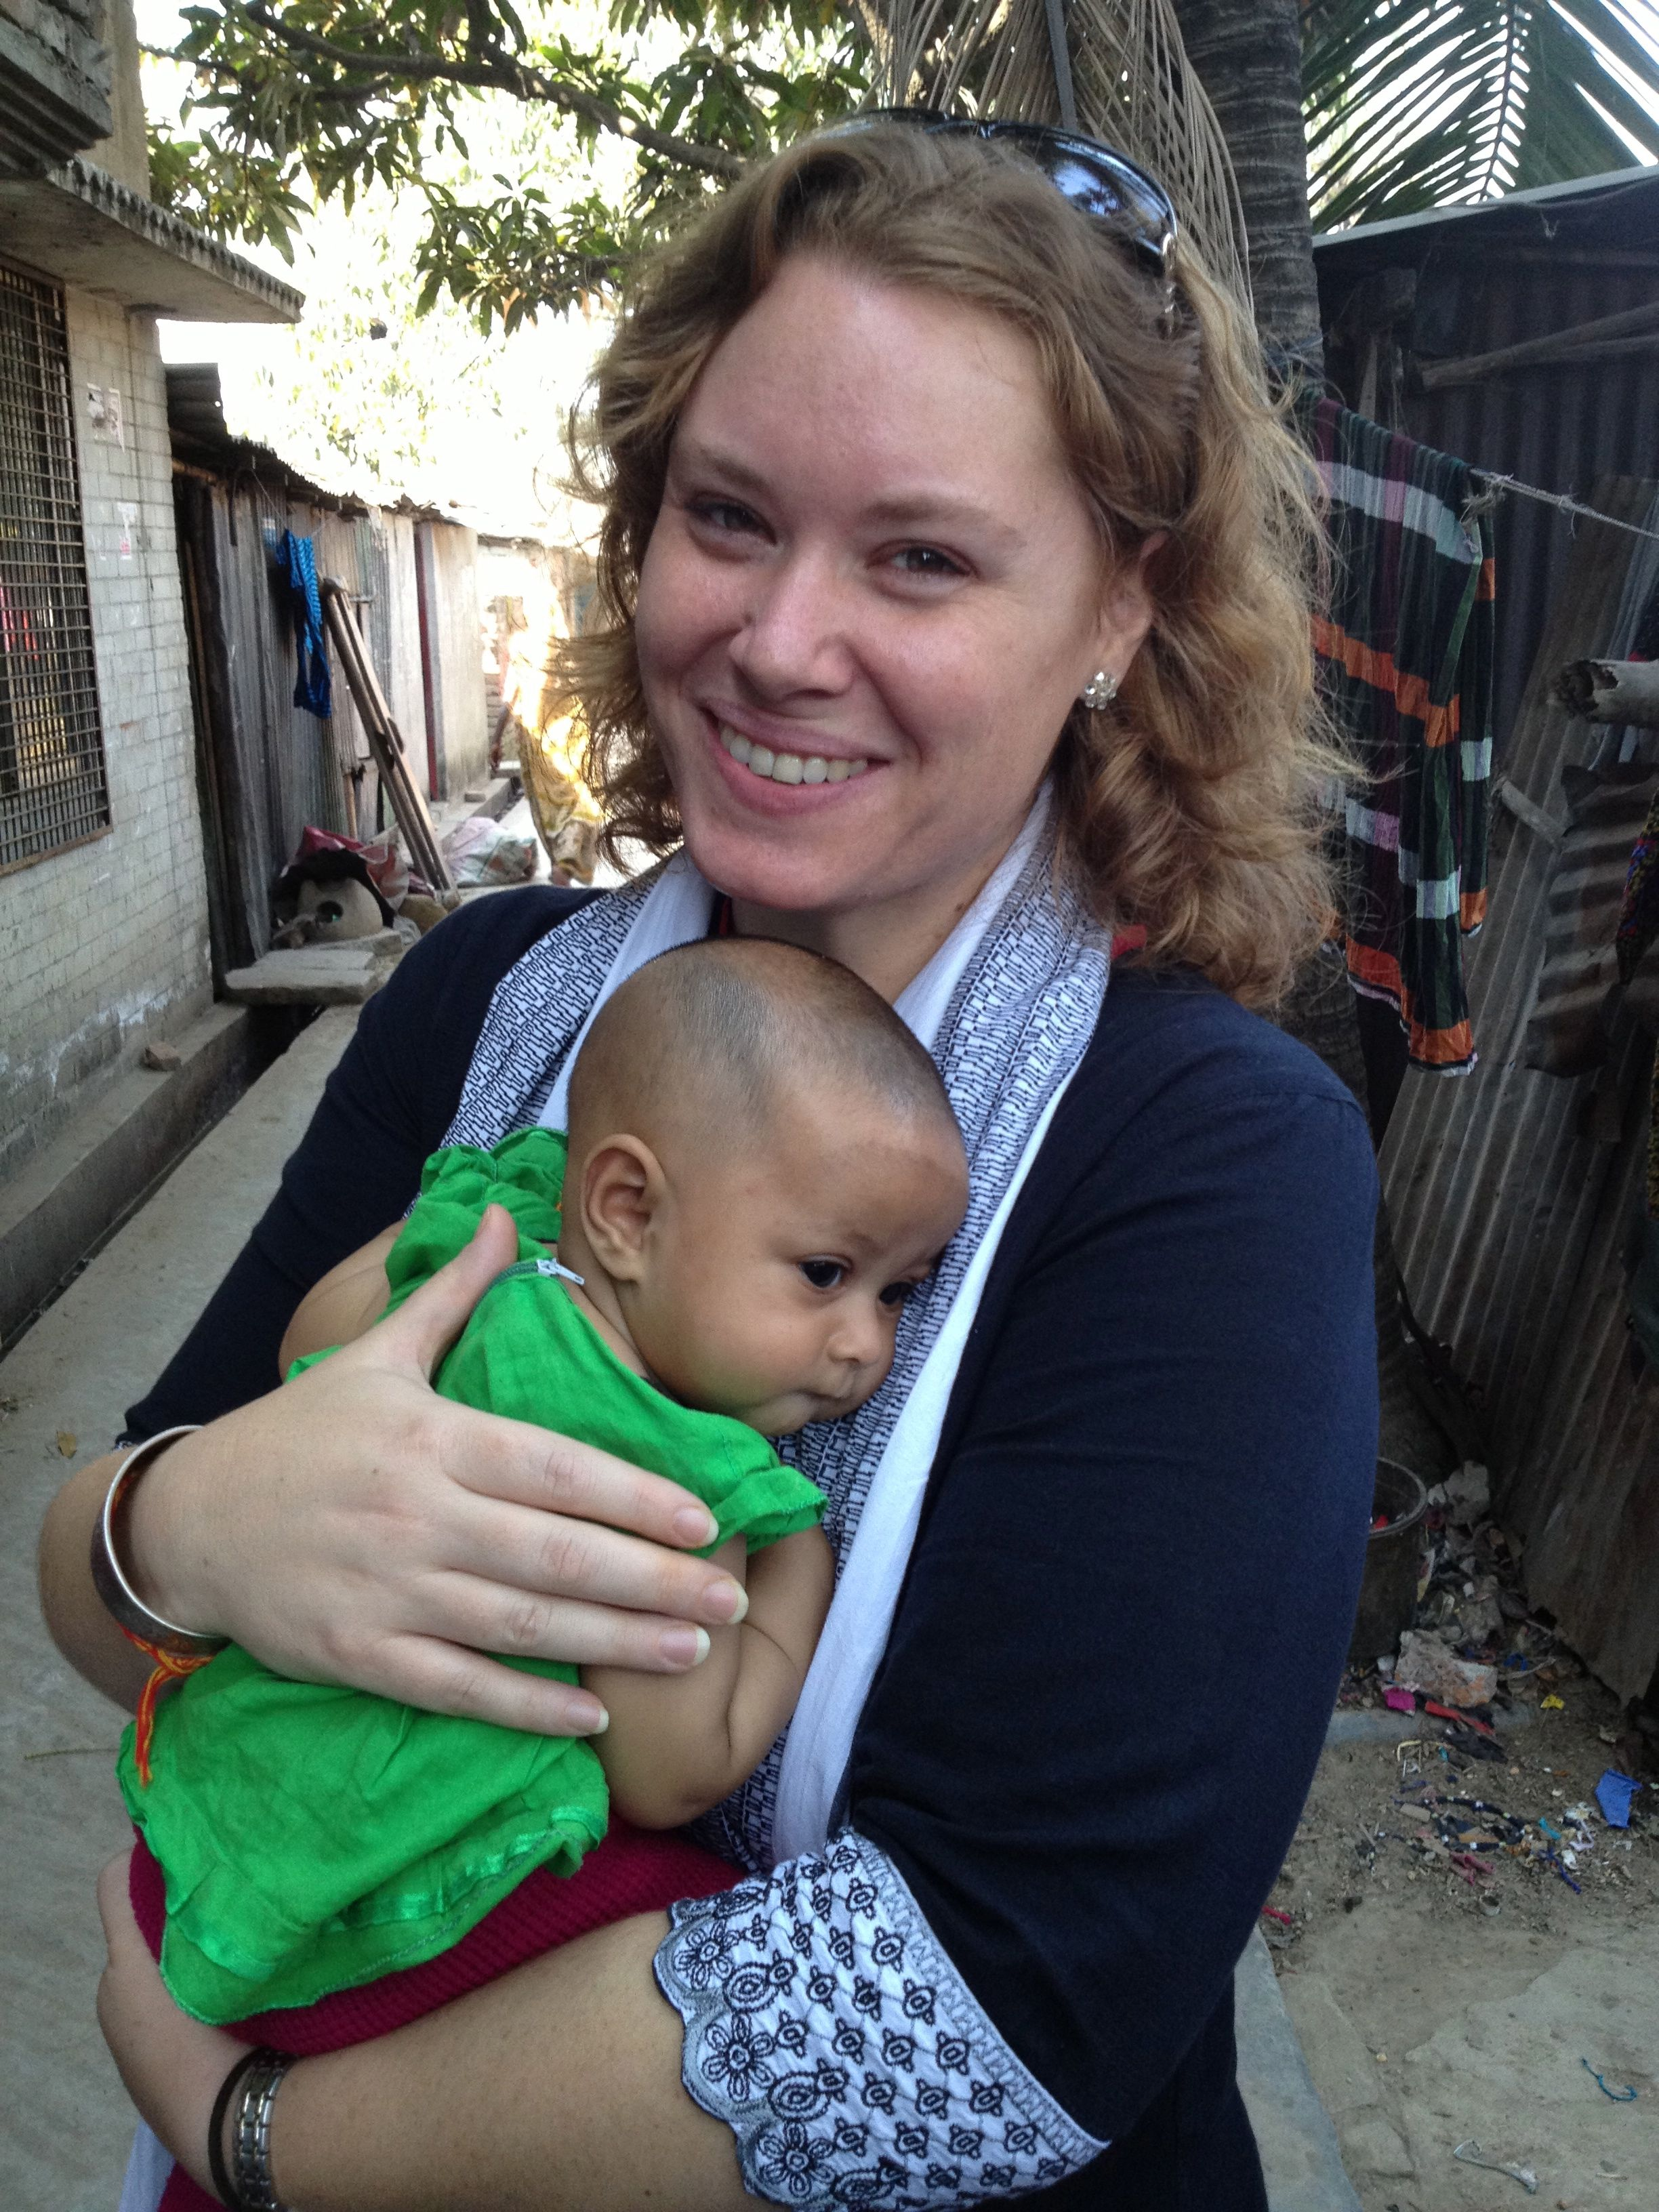 Ross Colgate, PhD holding baby in Dhaka